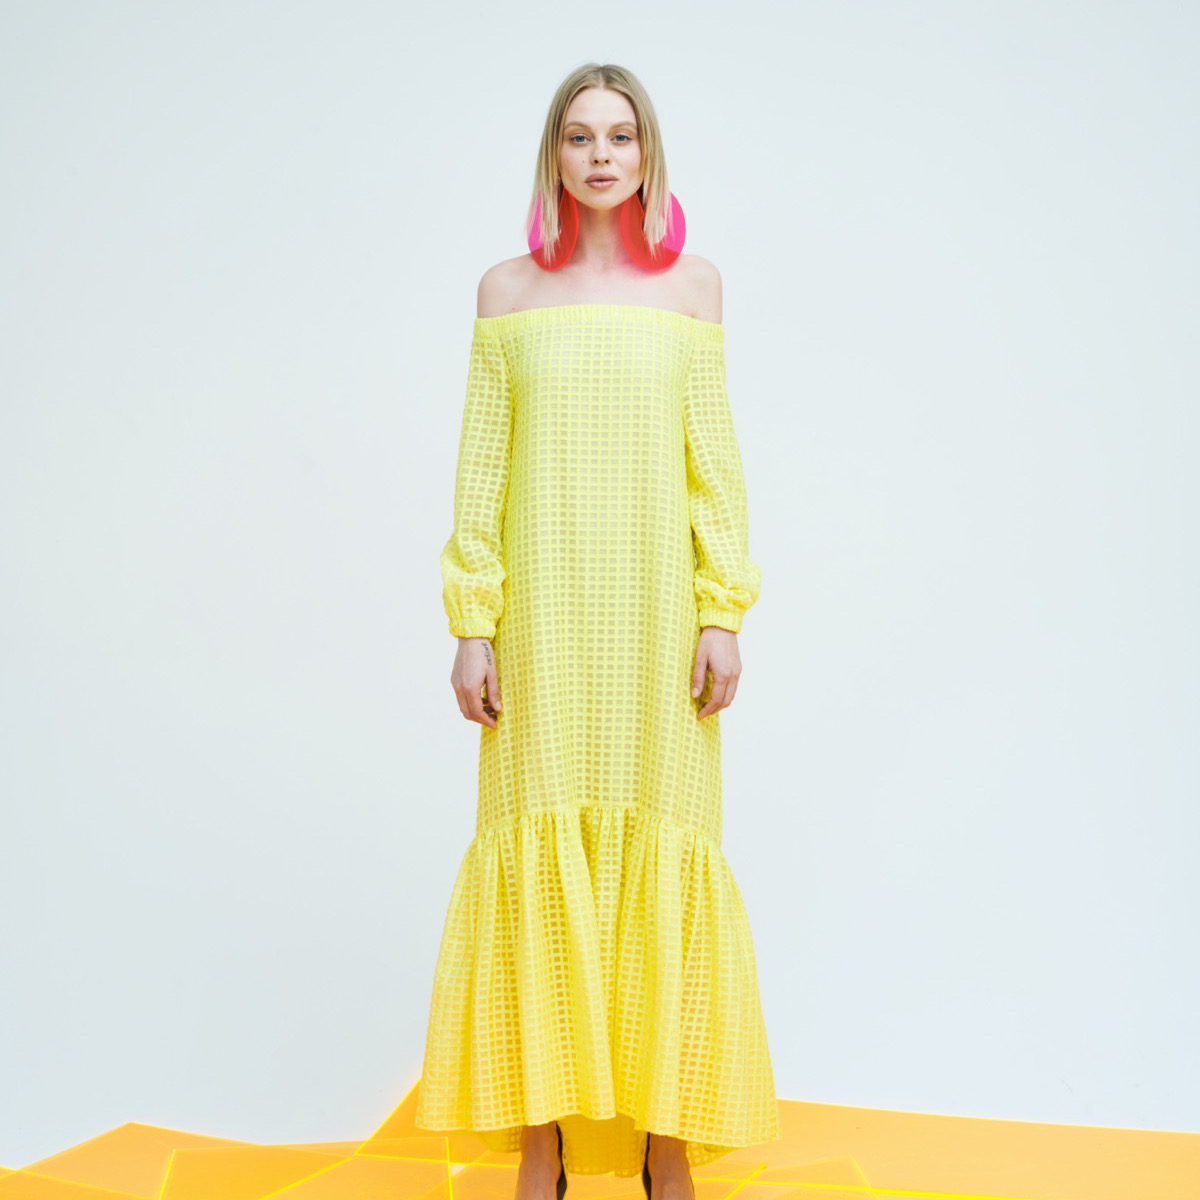 CABARET DRESS, YELLOW